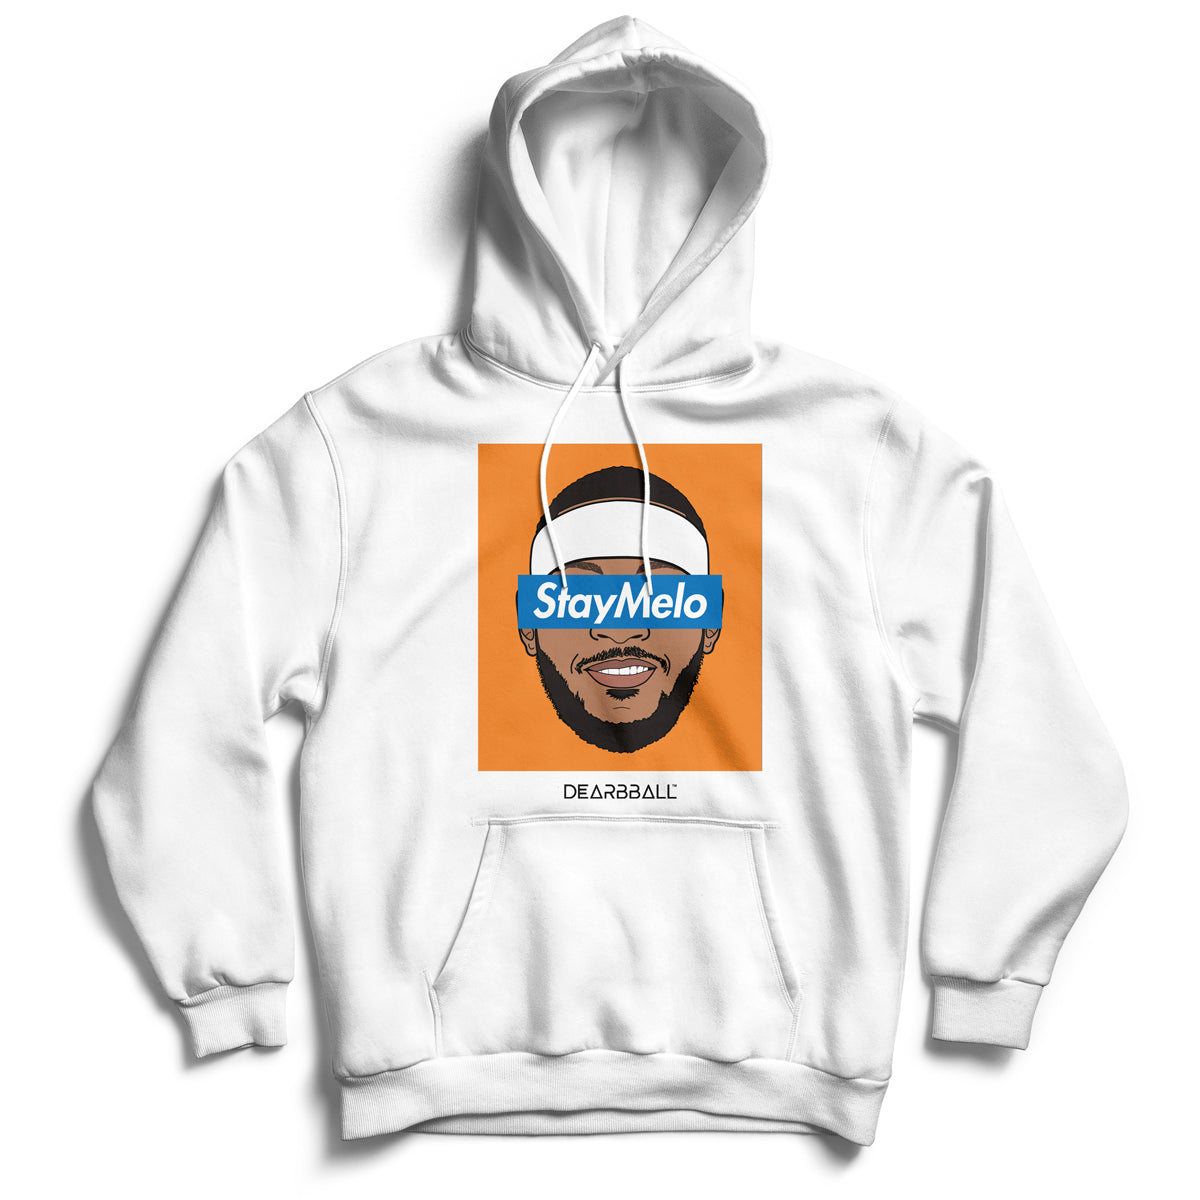 Carmelo_Anthony_hoodie_STAYMELO_NY__New_York_Knicks_dearbball_white